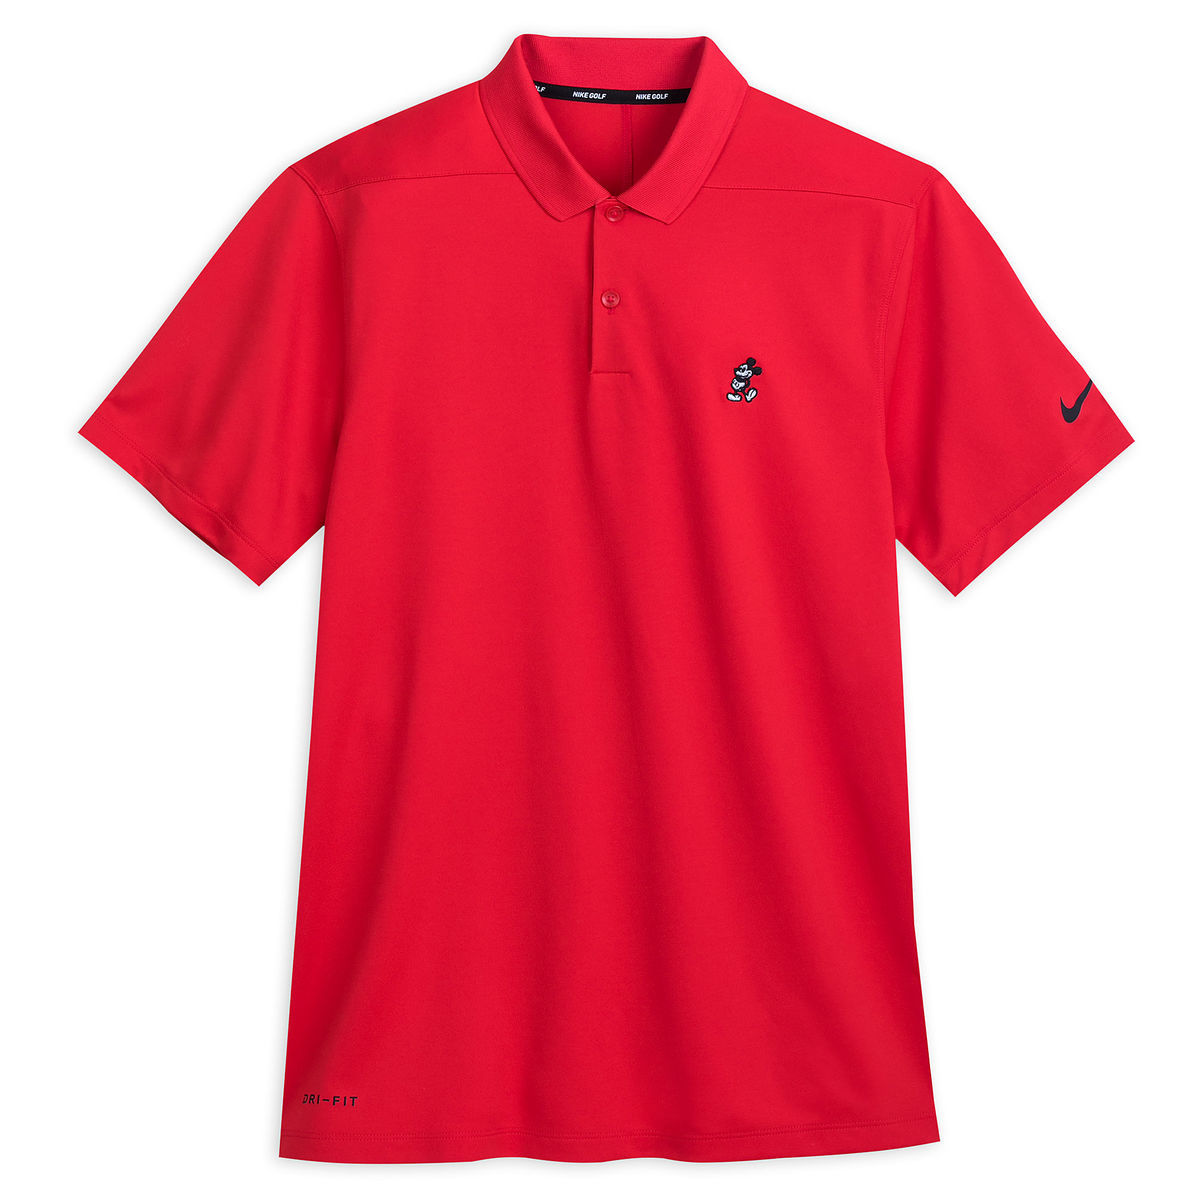 Mickey Mouse Performance Polo Shirt For Men By Nike Golf Red